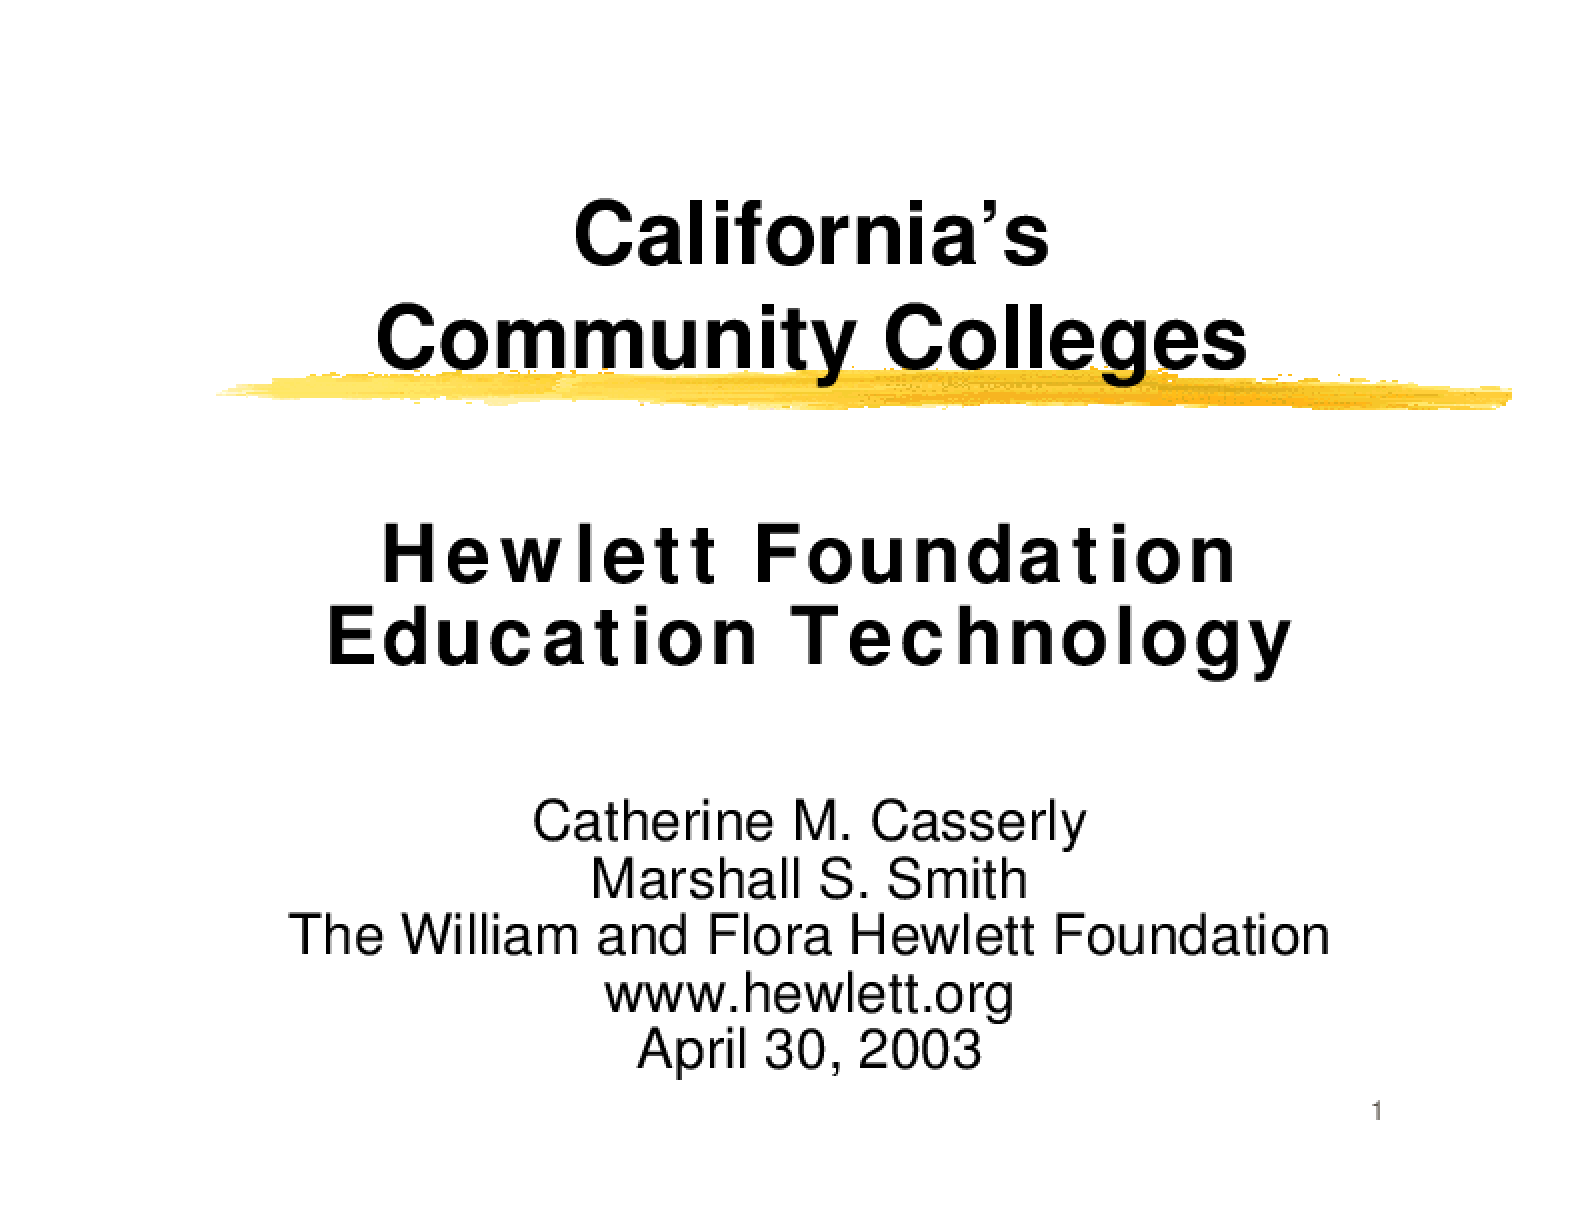 California's Community Colleges: Hewlett Foundation Education Technology